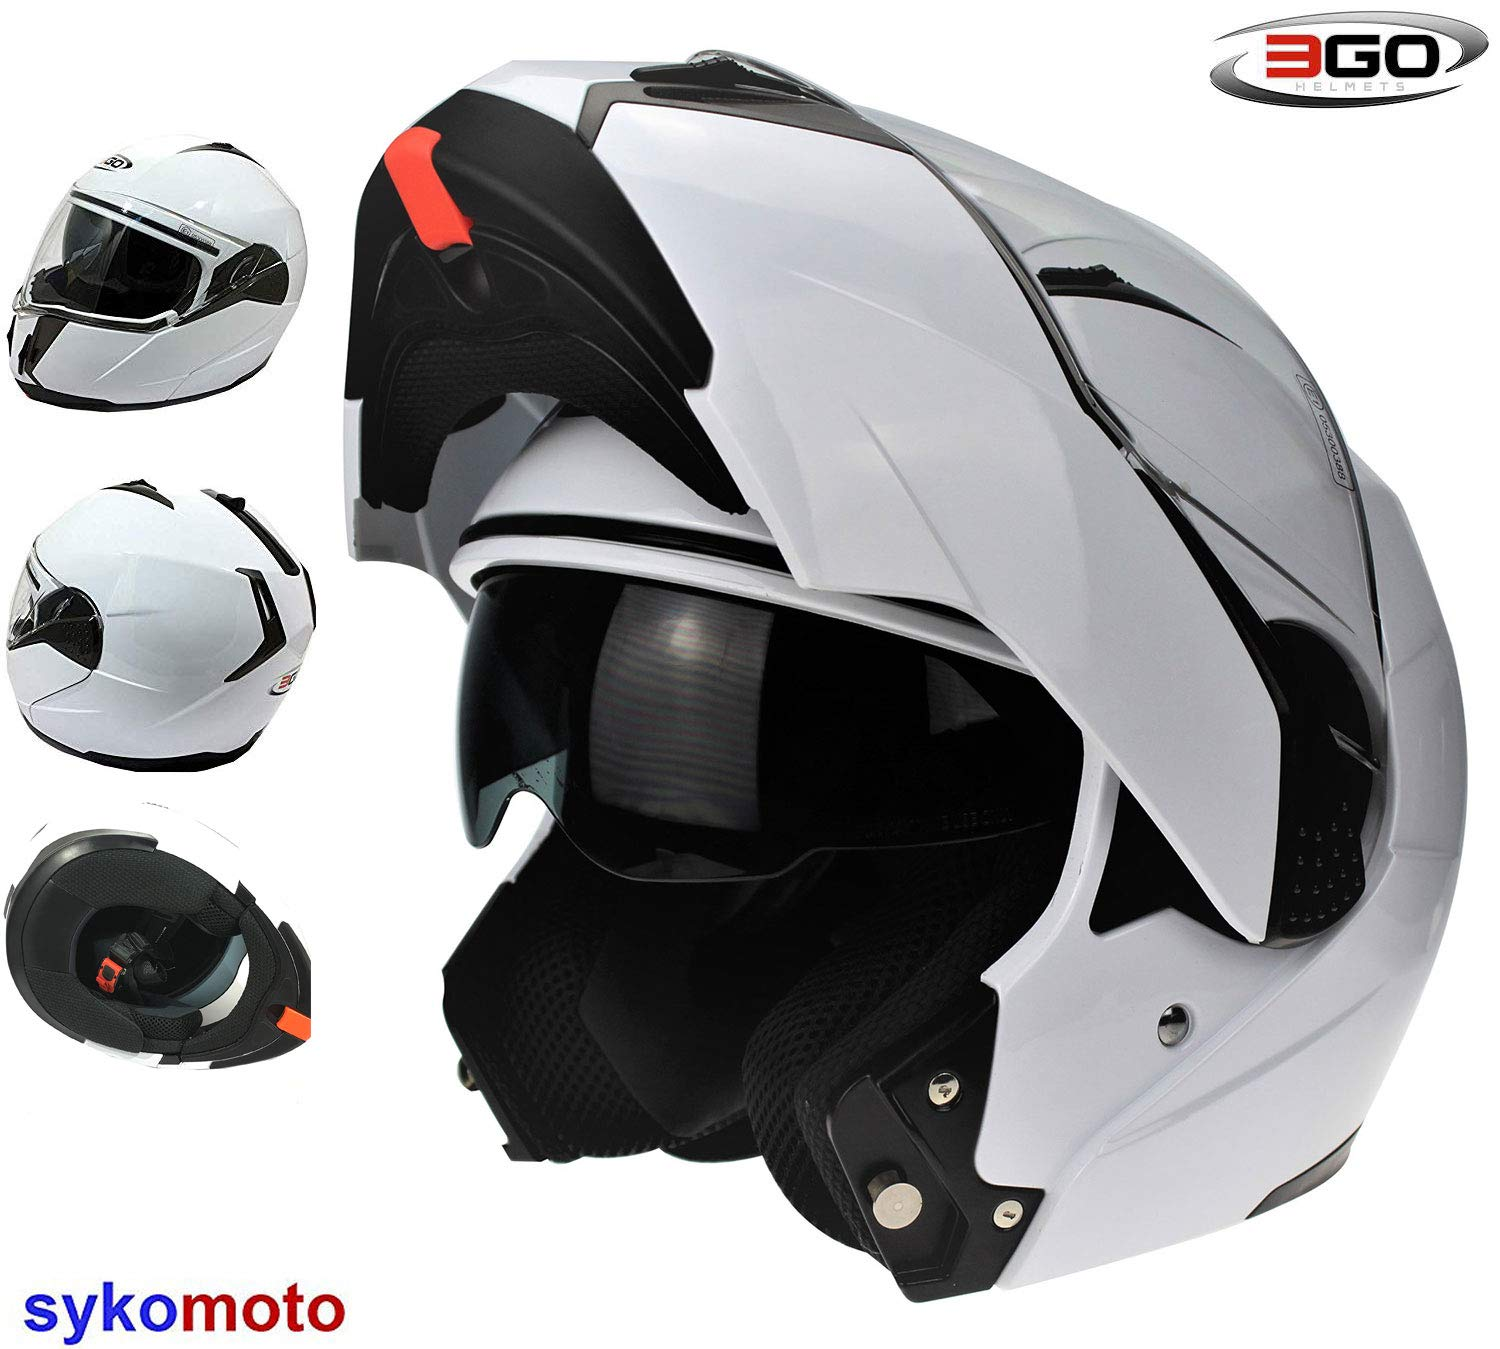 3GO NEW MODEL E335 FULL FACE MOTORBIKE MOTORCYCLE CRASH MODULAR ECE APPROVED ACU SPORTS DOUBLE VISOR ADULTS SOLID WHITE L 59-60 CM